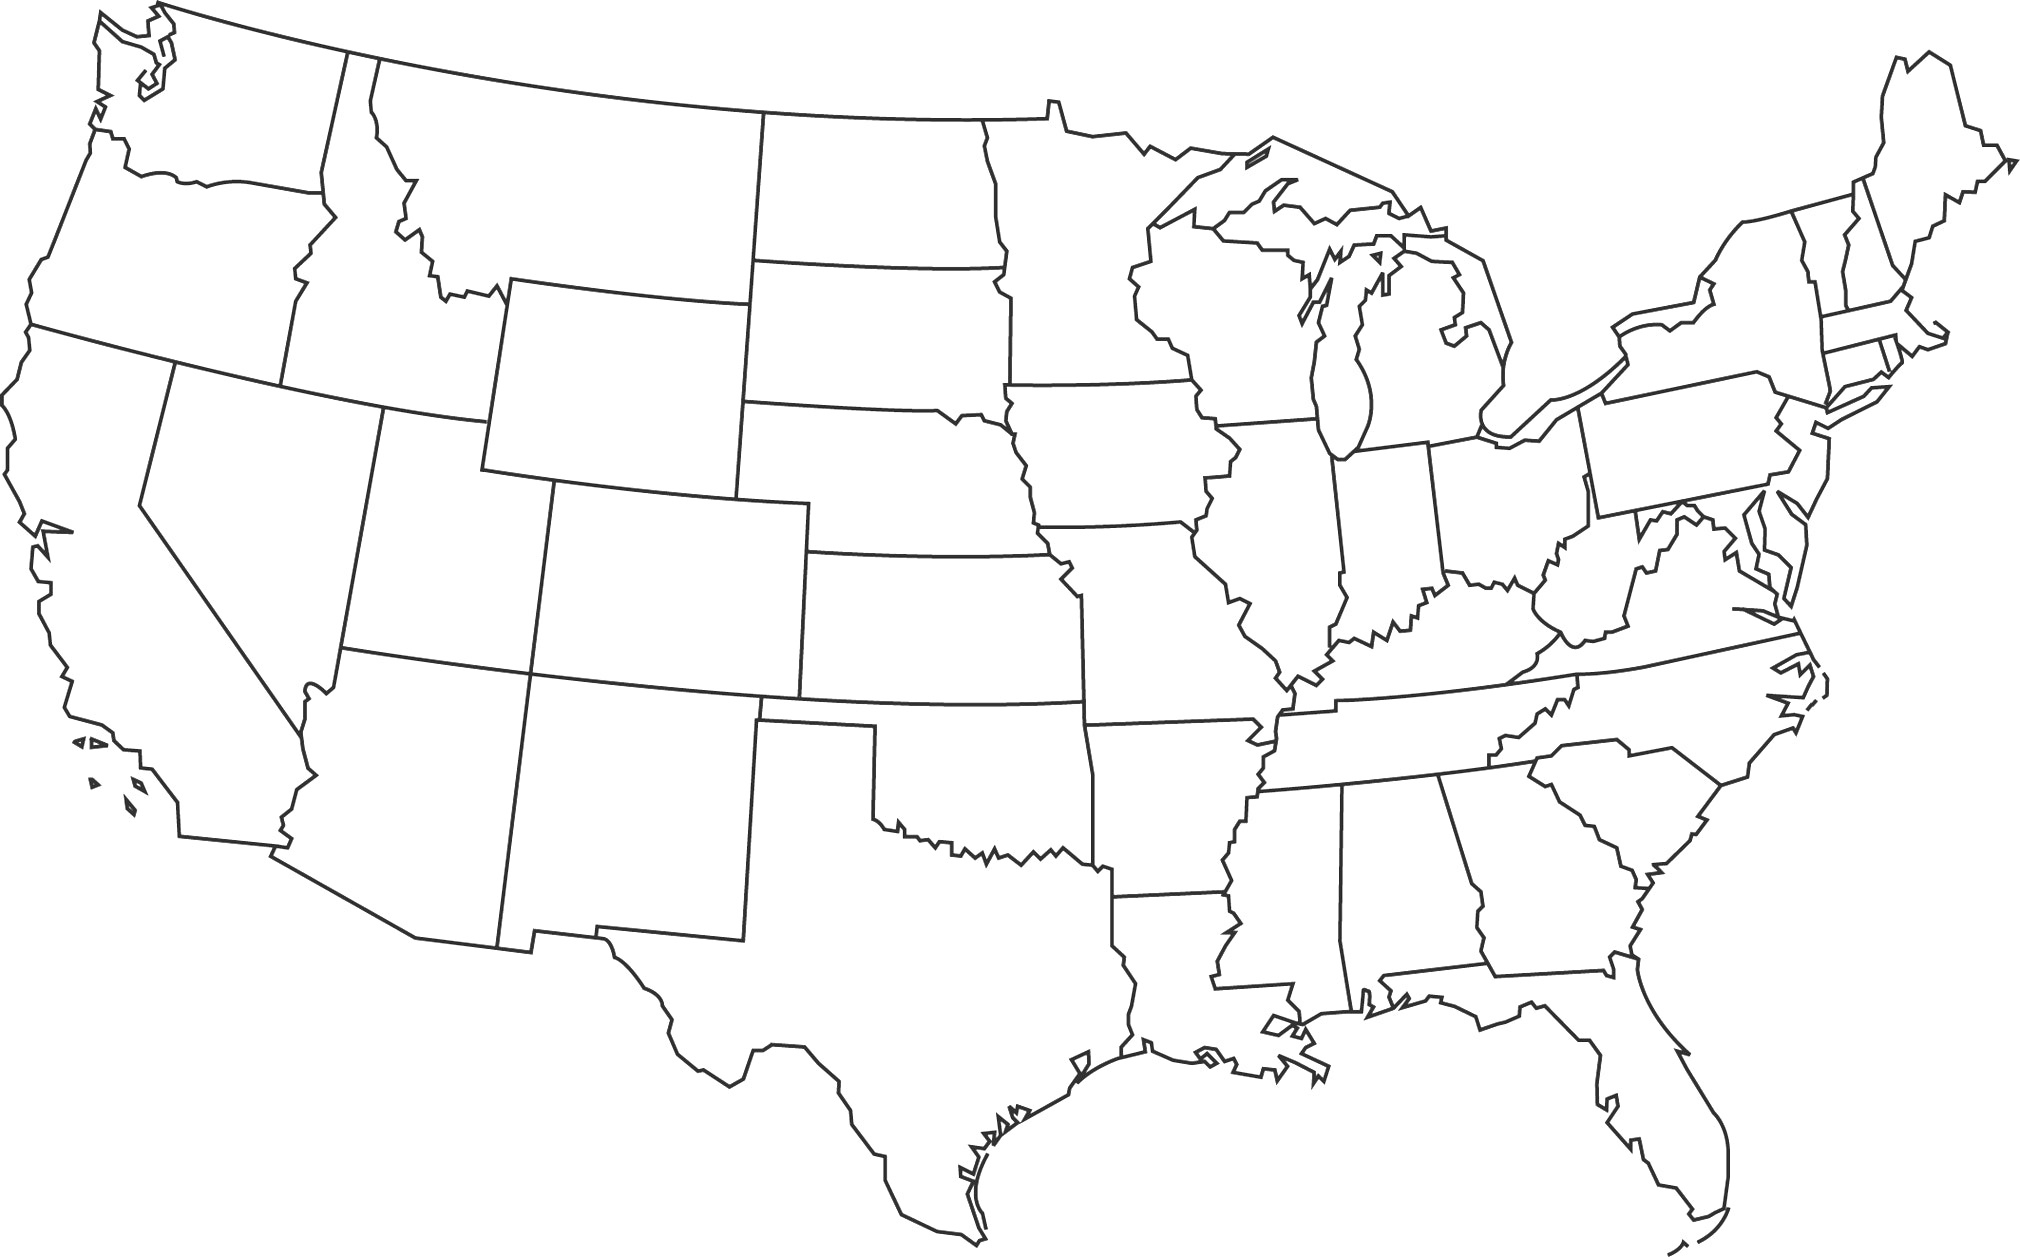 Outline Map Of Us And Travel Information | Download Free Outline Map - Free Printable Outline Map Of United States